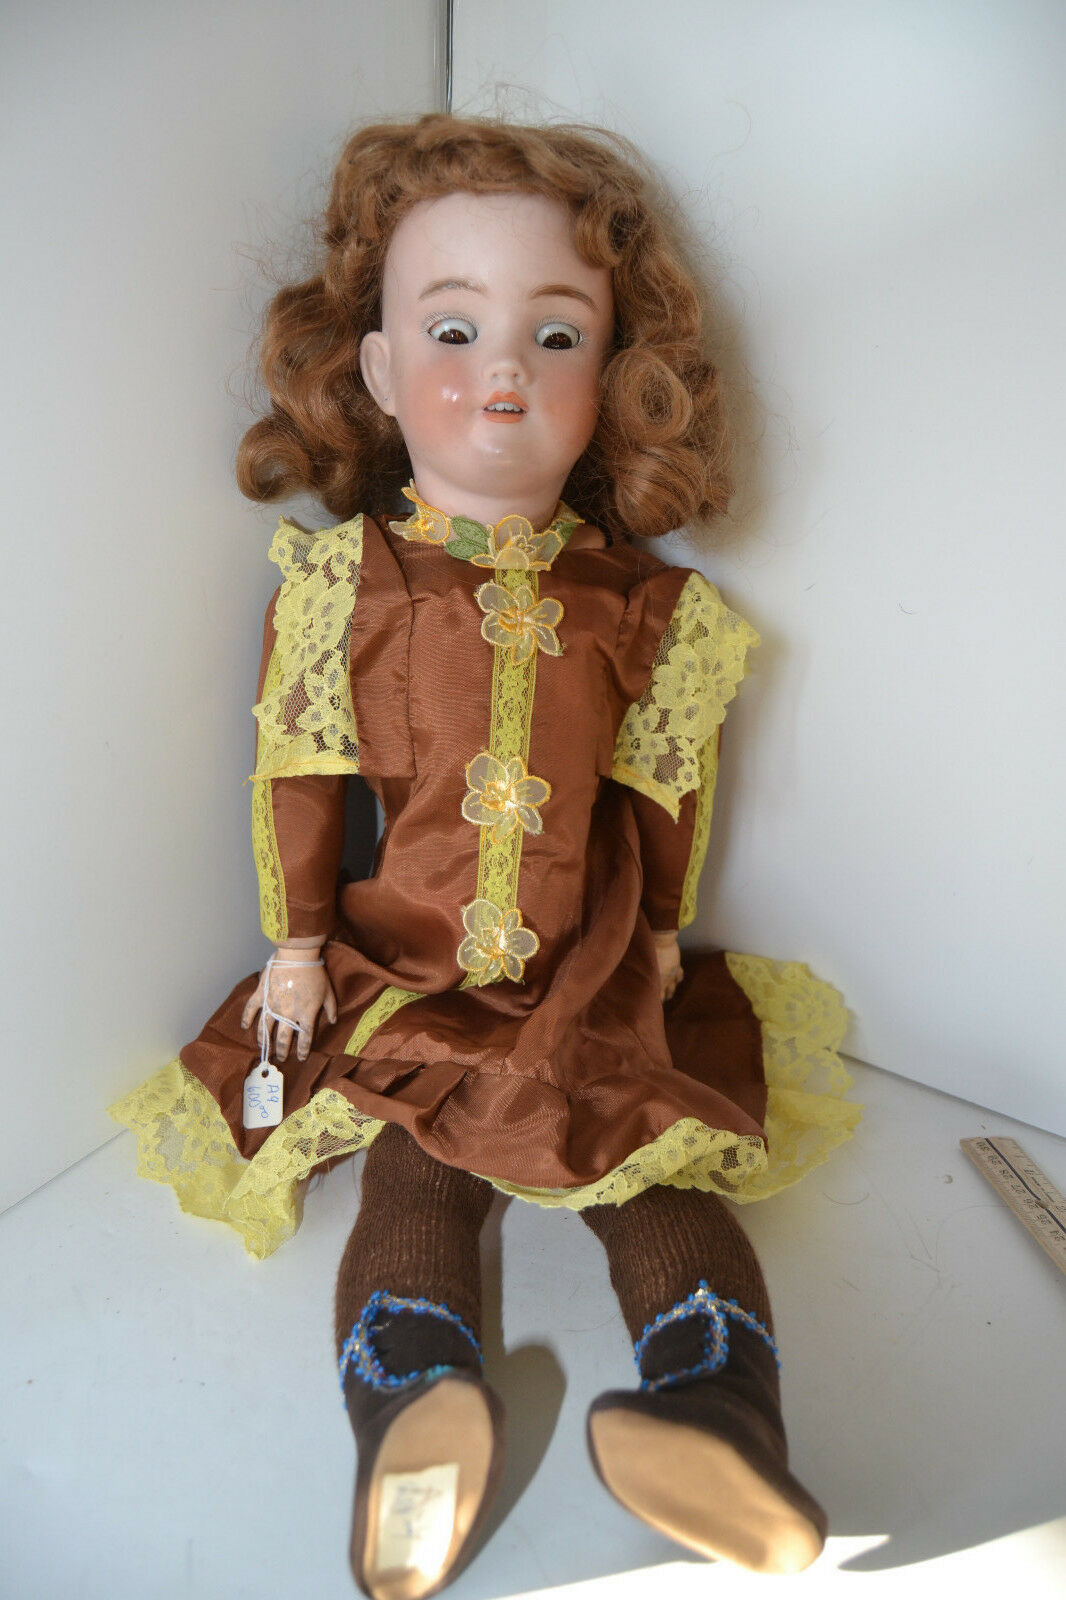 Gorgeous 25  Simon & Halbig Open Teeth Mouth  German Bisque Character Doll